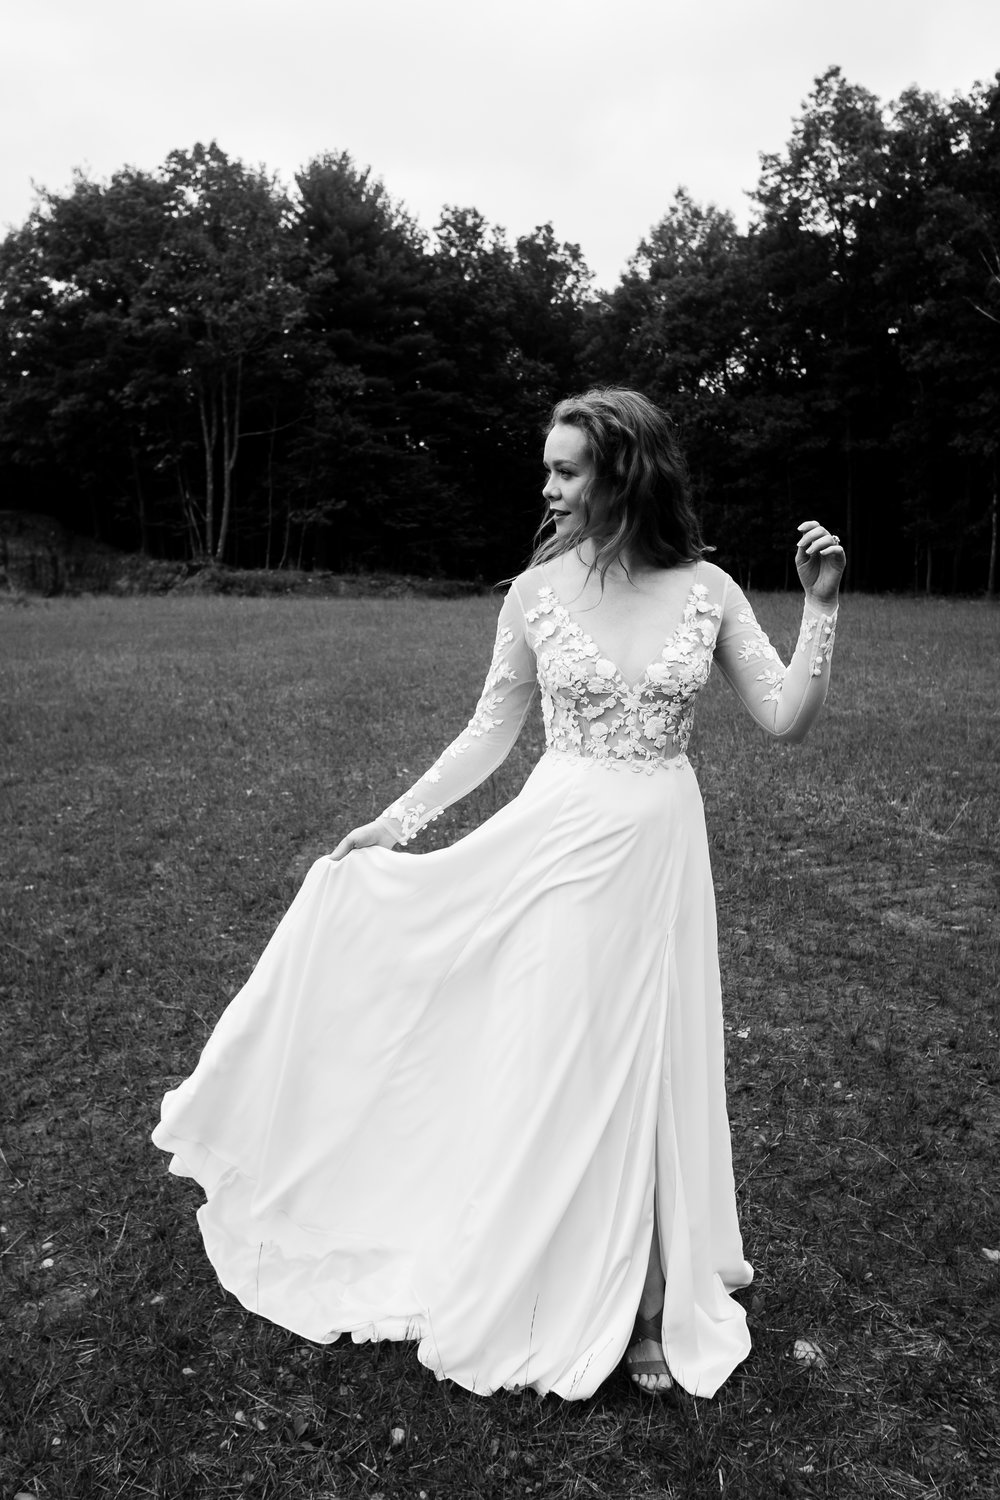 WSPCo-Gather-Greene-Rebecca-Schoneveld-Bridal-388 copy.jpg